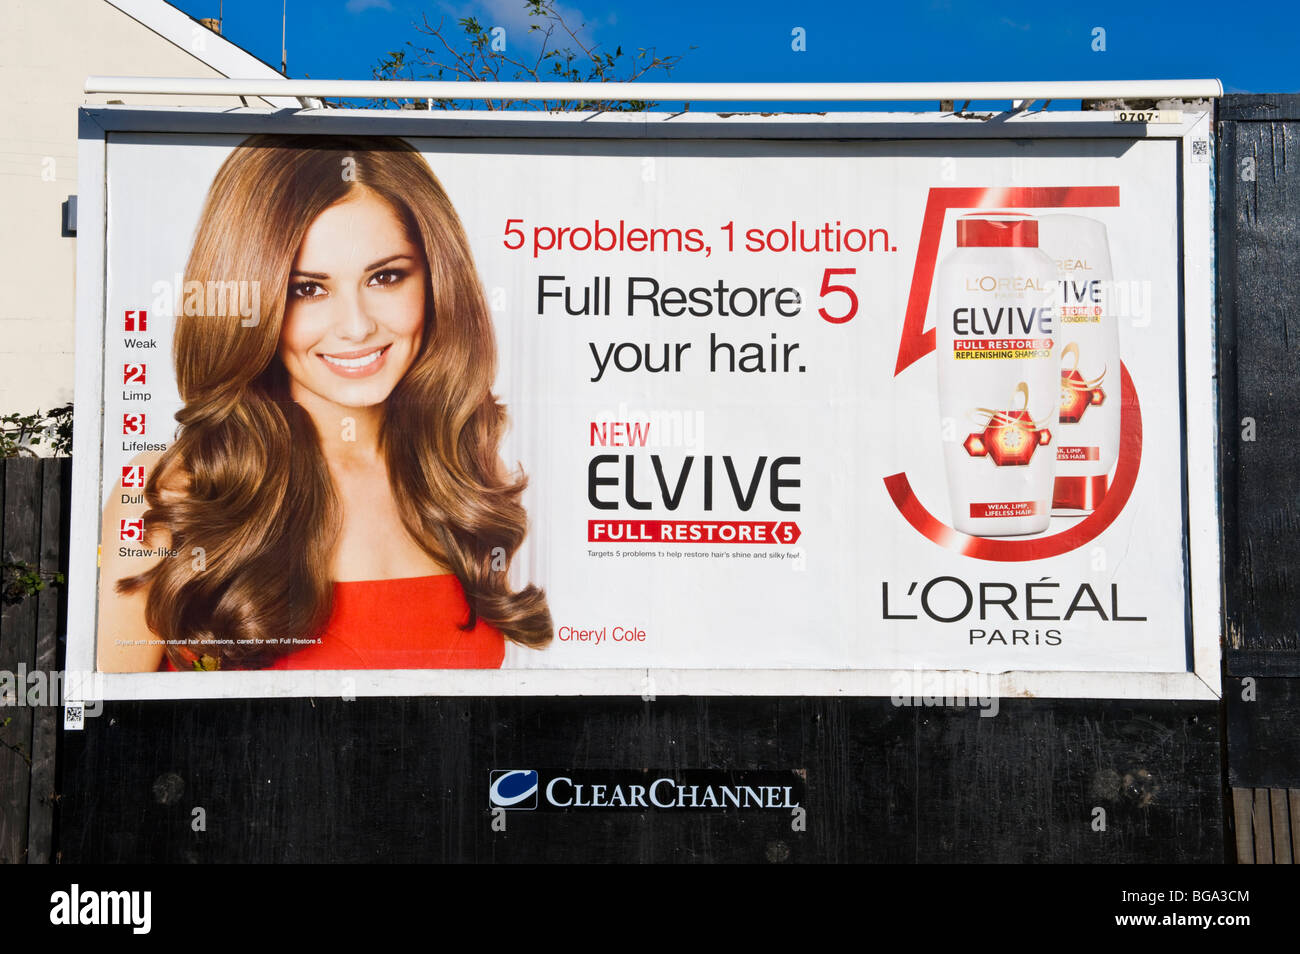 ClearChannel billboard site featuring Cheryl Cole on L ...